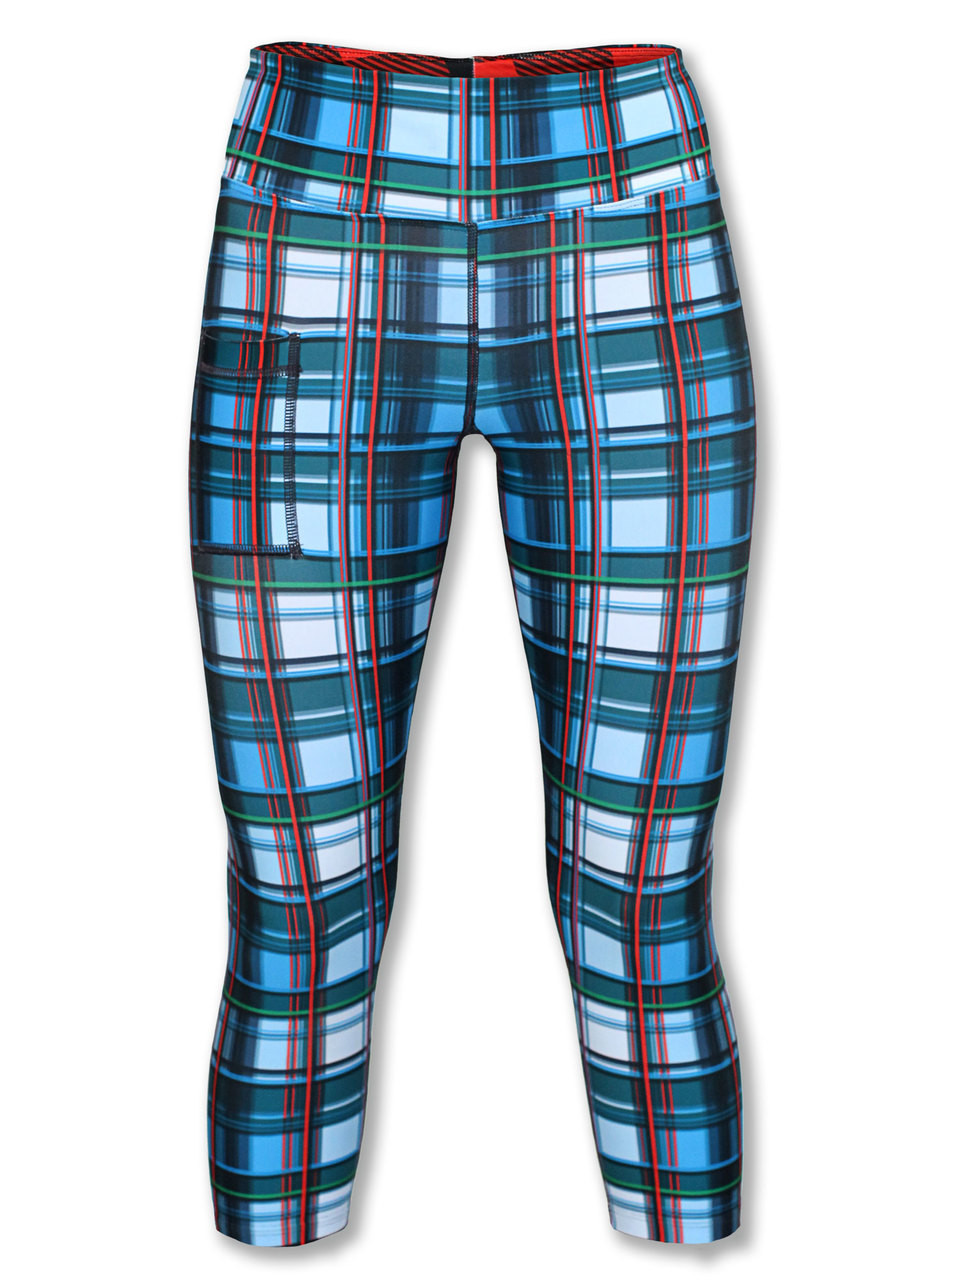 INKnBURN Women's Rad Plaid Capris